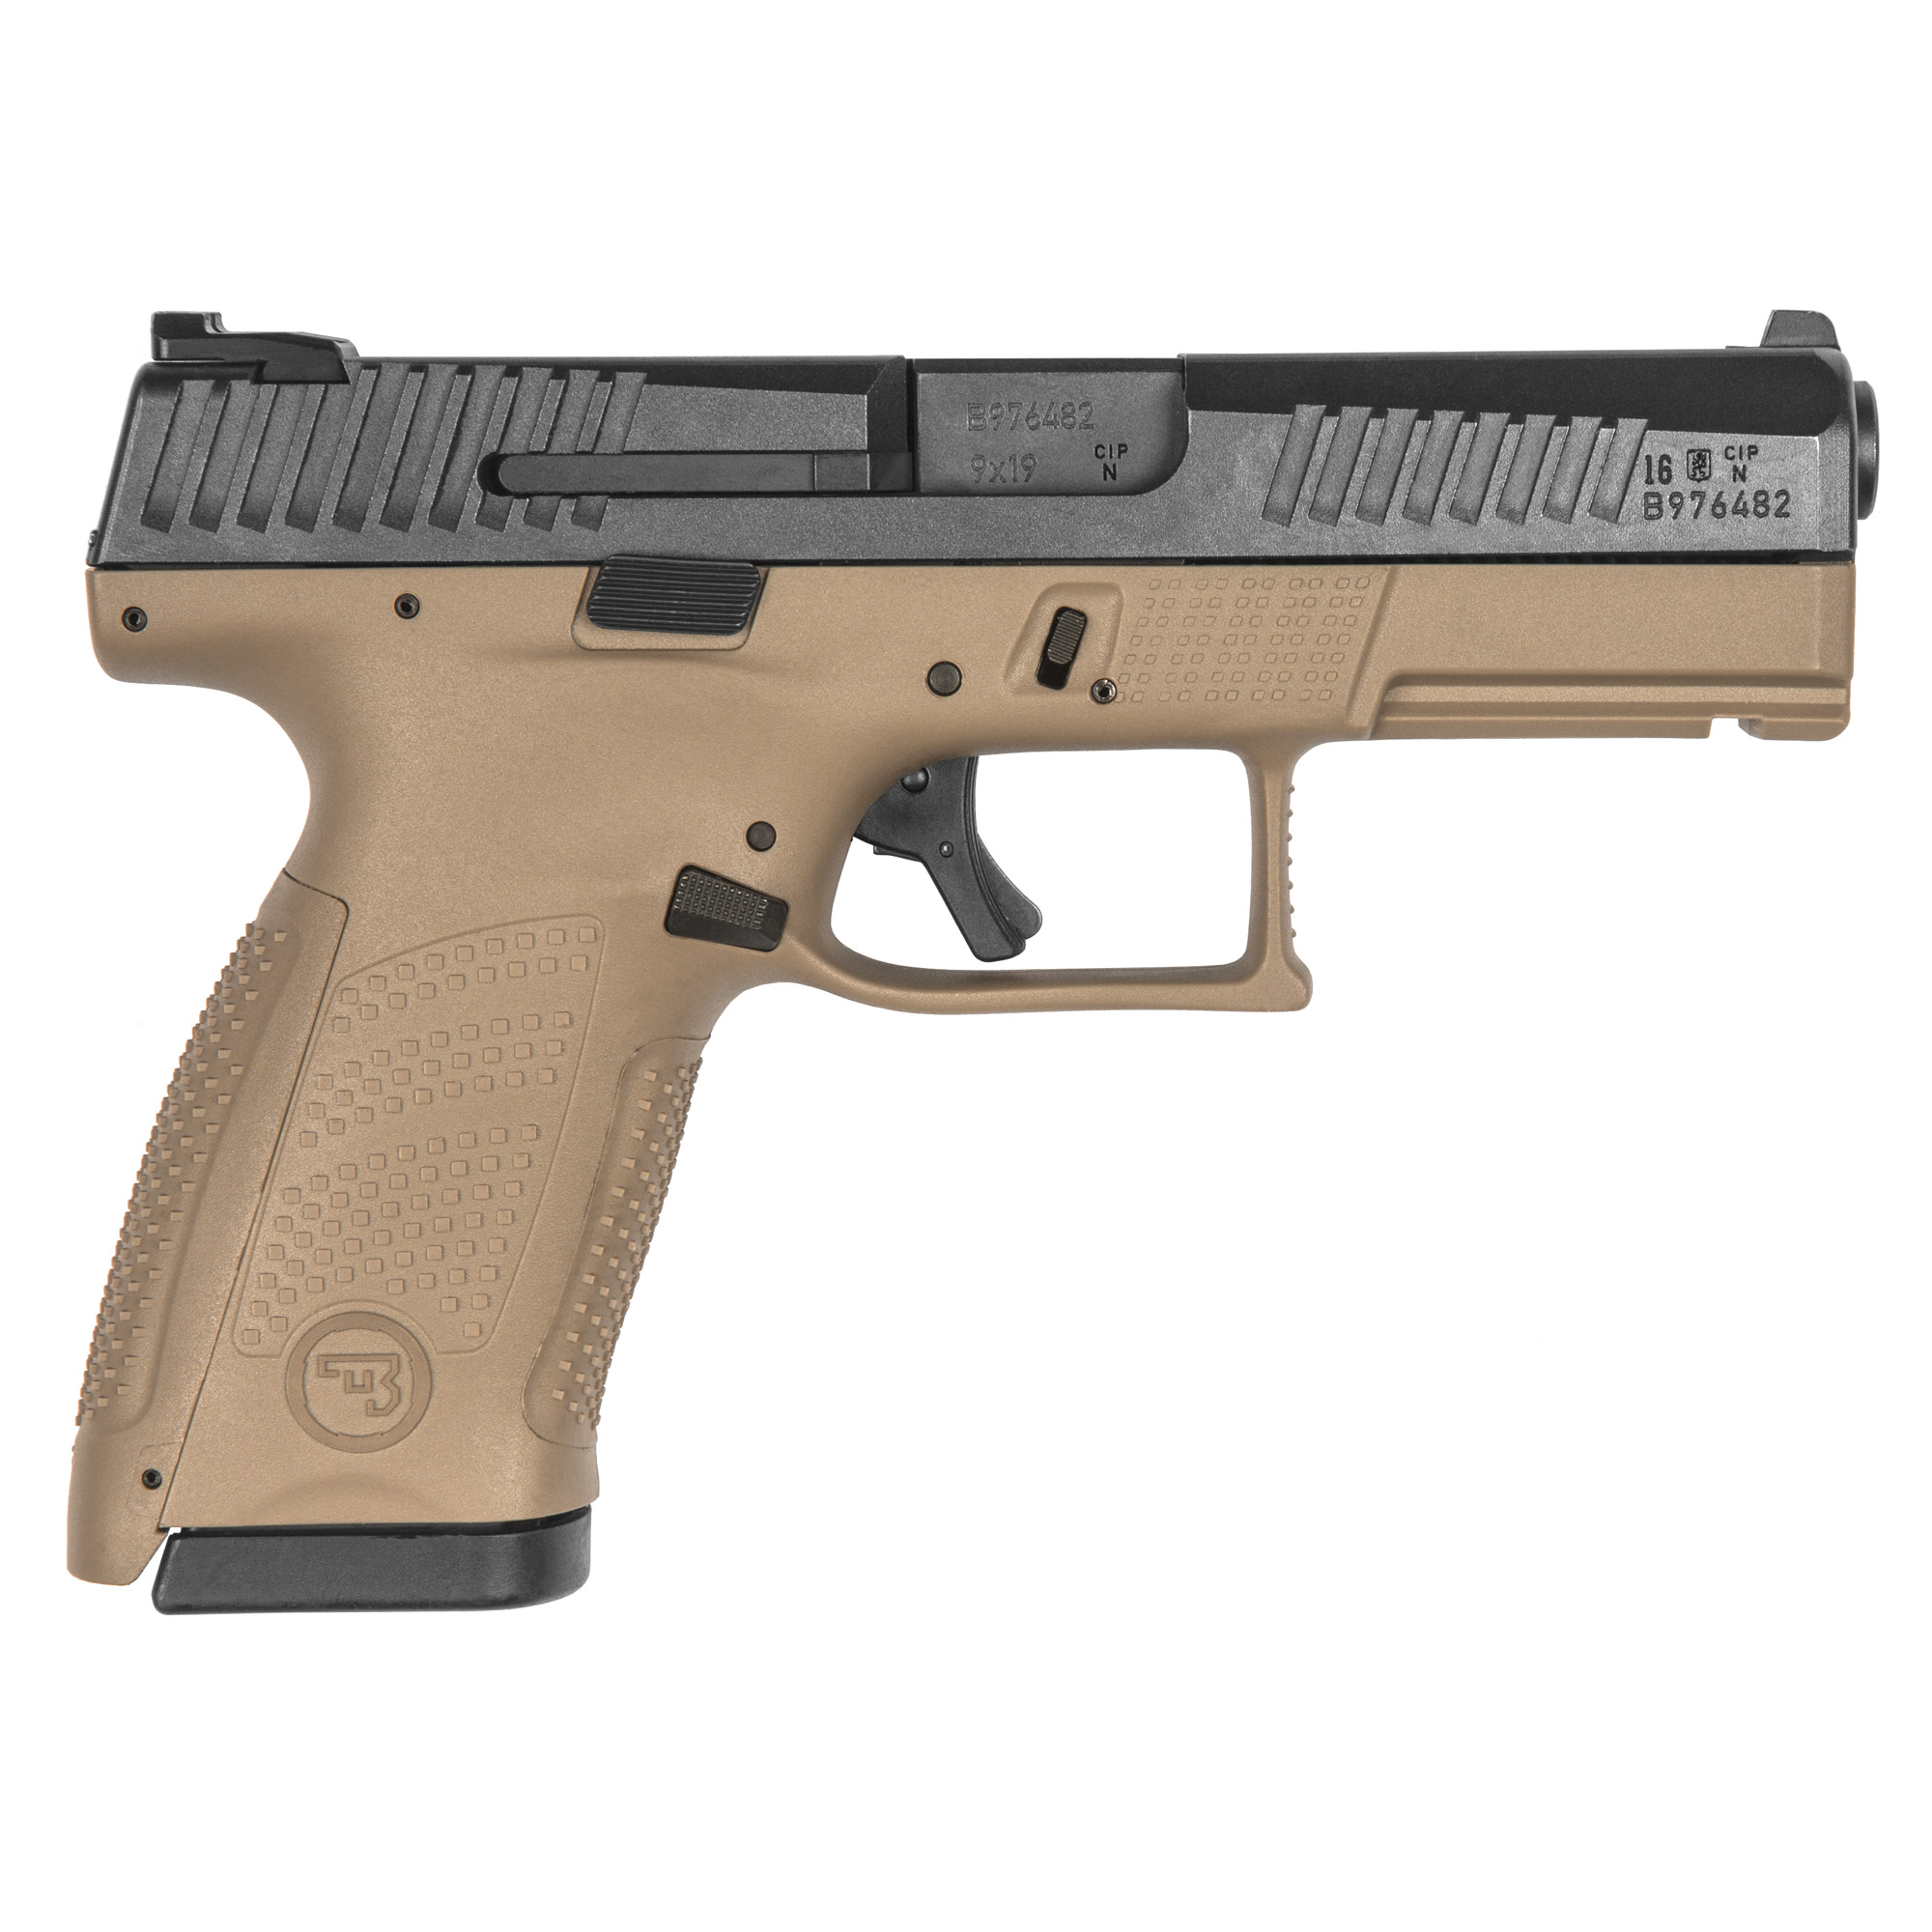 """With CZ reliability"""" engineered ergonomics and a bevy of features both familiar and new"""" the P-10 is the complete package. The CZ grip angle"""" helps the P-10 avoids that 'brick-in-the-hand' feeling that has plagued many in the striker-fired genre"""" allowing it to point naturally. A mild palm swell"""" deep beavertail and three interchangeable backstraps make the P-10 fit a wide variety of hands. The P-10's trigger is designed to minimize creep and stacking"""" and after initial break-in averages a clean 4.5-5 lb. pull and rebounds with a short"""" positive reset - meaning single shots can be meticulously placed while follow-ups are effortless. Built to withstand the rigors of military use"""" its fiber-reinforced polymer frame and hardy nitride finish are made for the daily grind. A generous trigger guard allows use with gloved hands while being undercut to allow as high a grip as possible"""" and a set of metal tactical sights allow for one-handed manipulation of the slide on a belt. Like all CZ pistols"""" the P-10 is built with CZ's legendary cold hammer forged barrel. The 'C' in the name indicates that it is compact in both frame and slide size"""" and magazines are of the same family as the hammer-fired P-07"""" with this model having a 10RD capacity."""